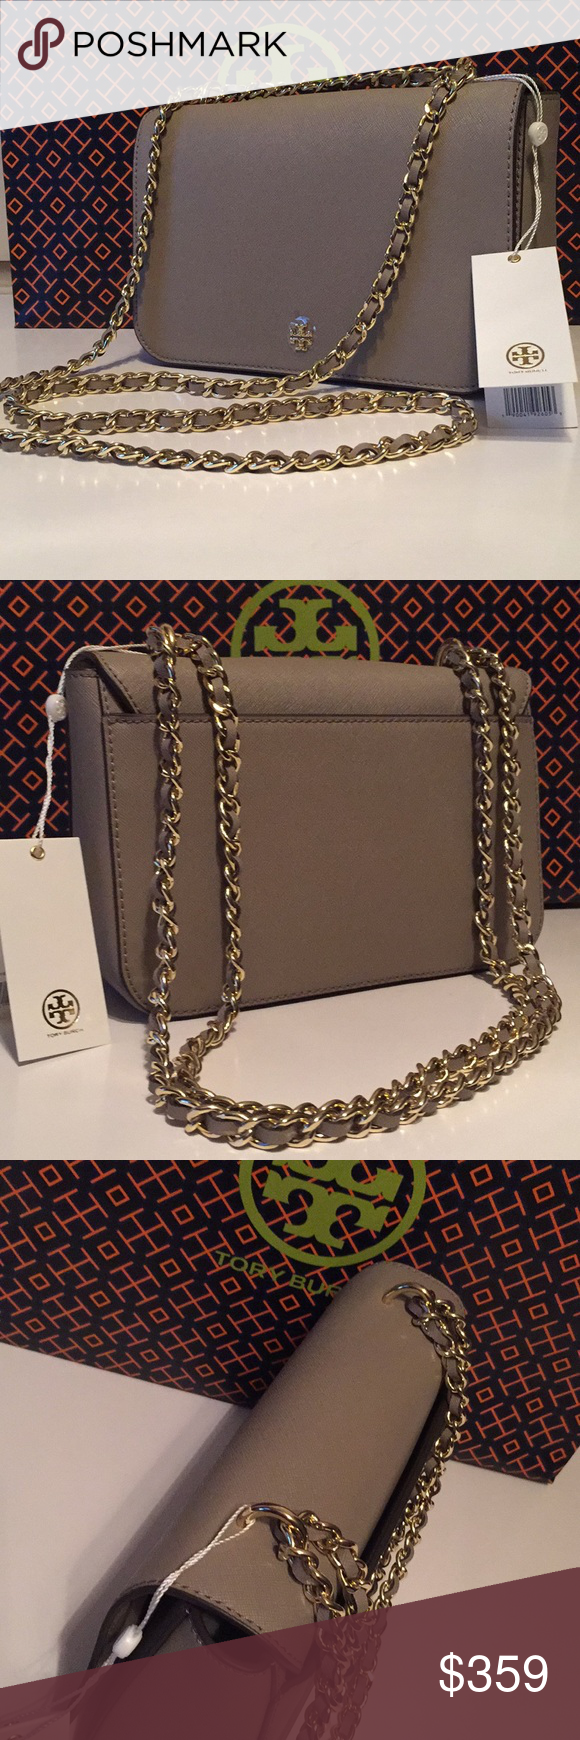 d7399d295f39 NWT Tory Burch Emerson Adjustable Shoulder Bag NWT Tory Burch Emerson  Adjustable Shoulder Bag. Authentic